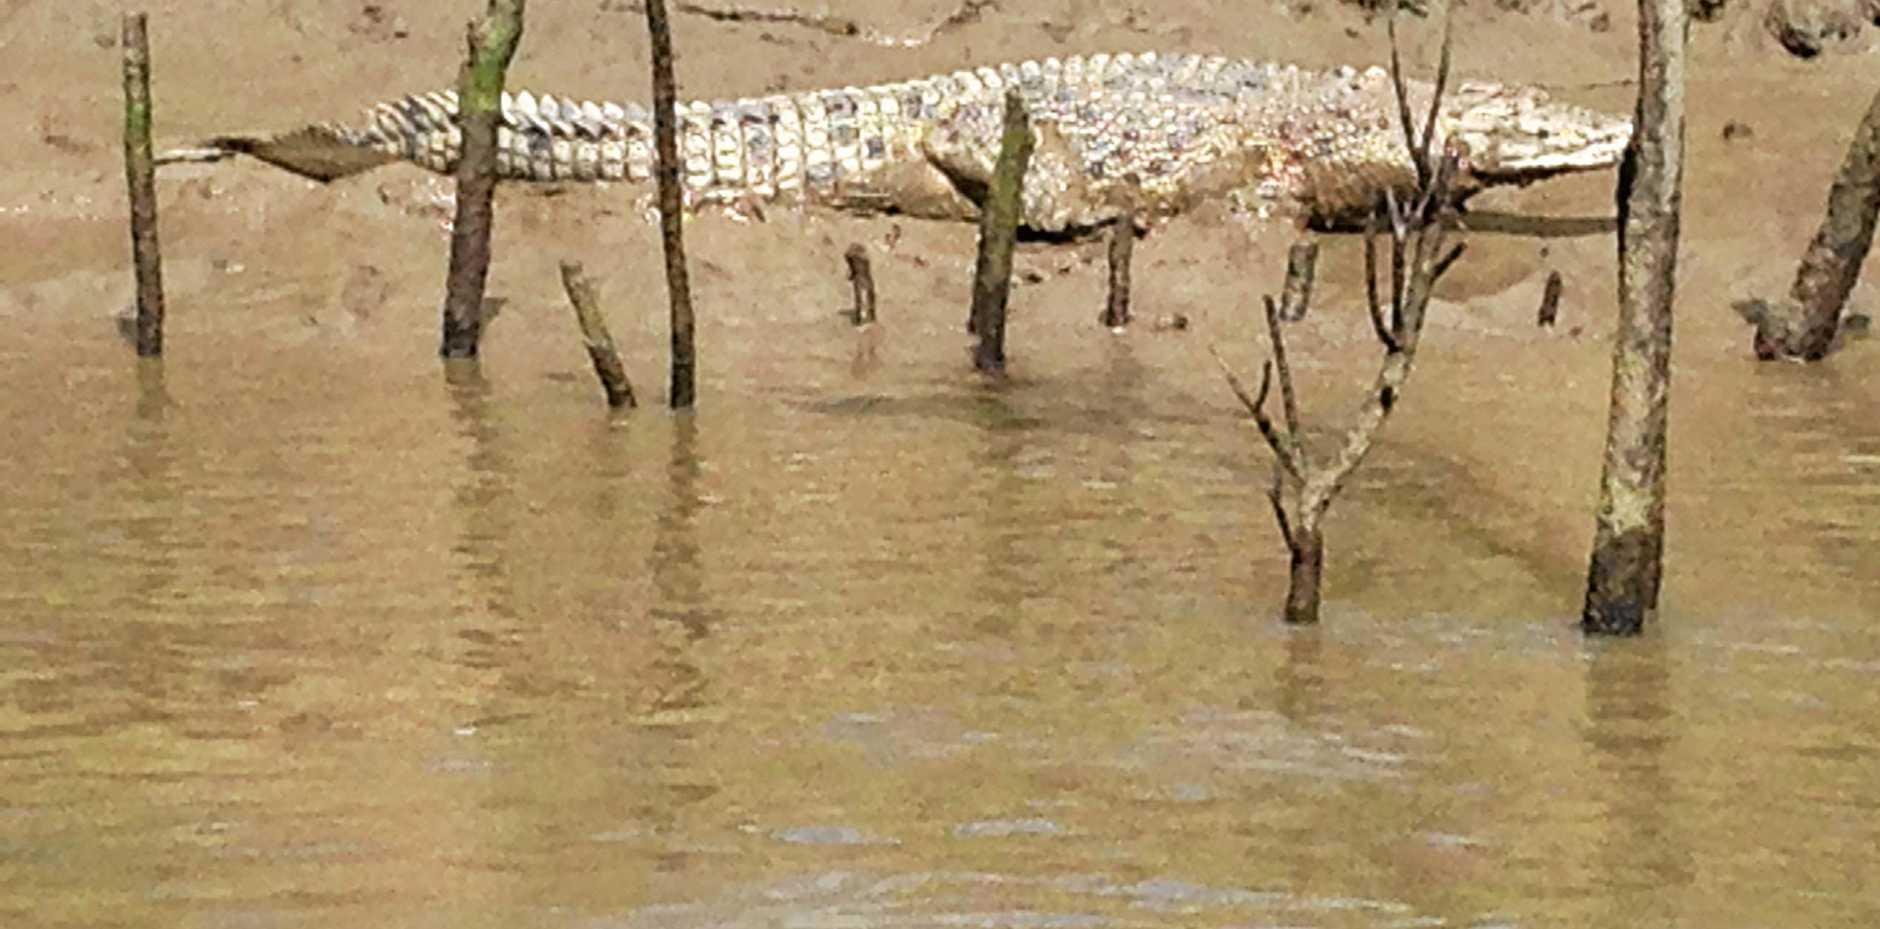 A past sighting of a crocodile in the Mary River.